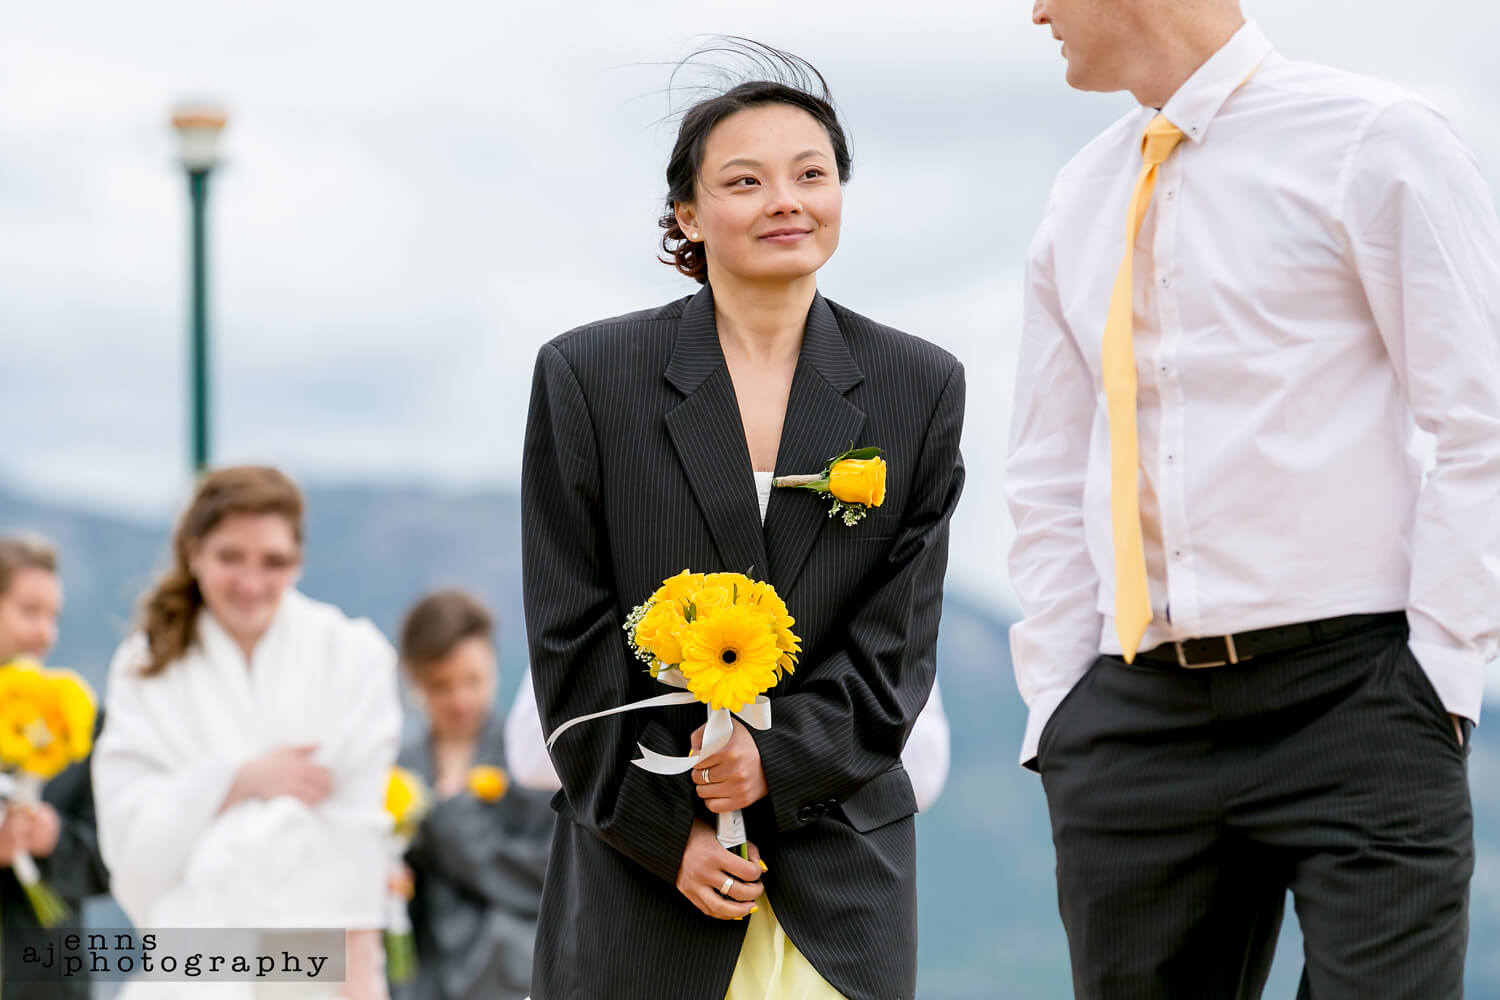 One of the bridesmaids wearing a groomsmen' jacket